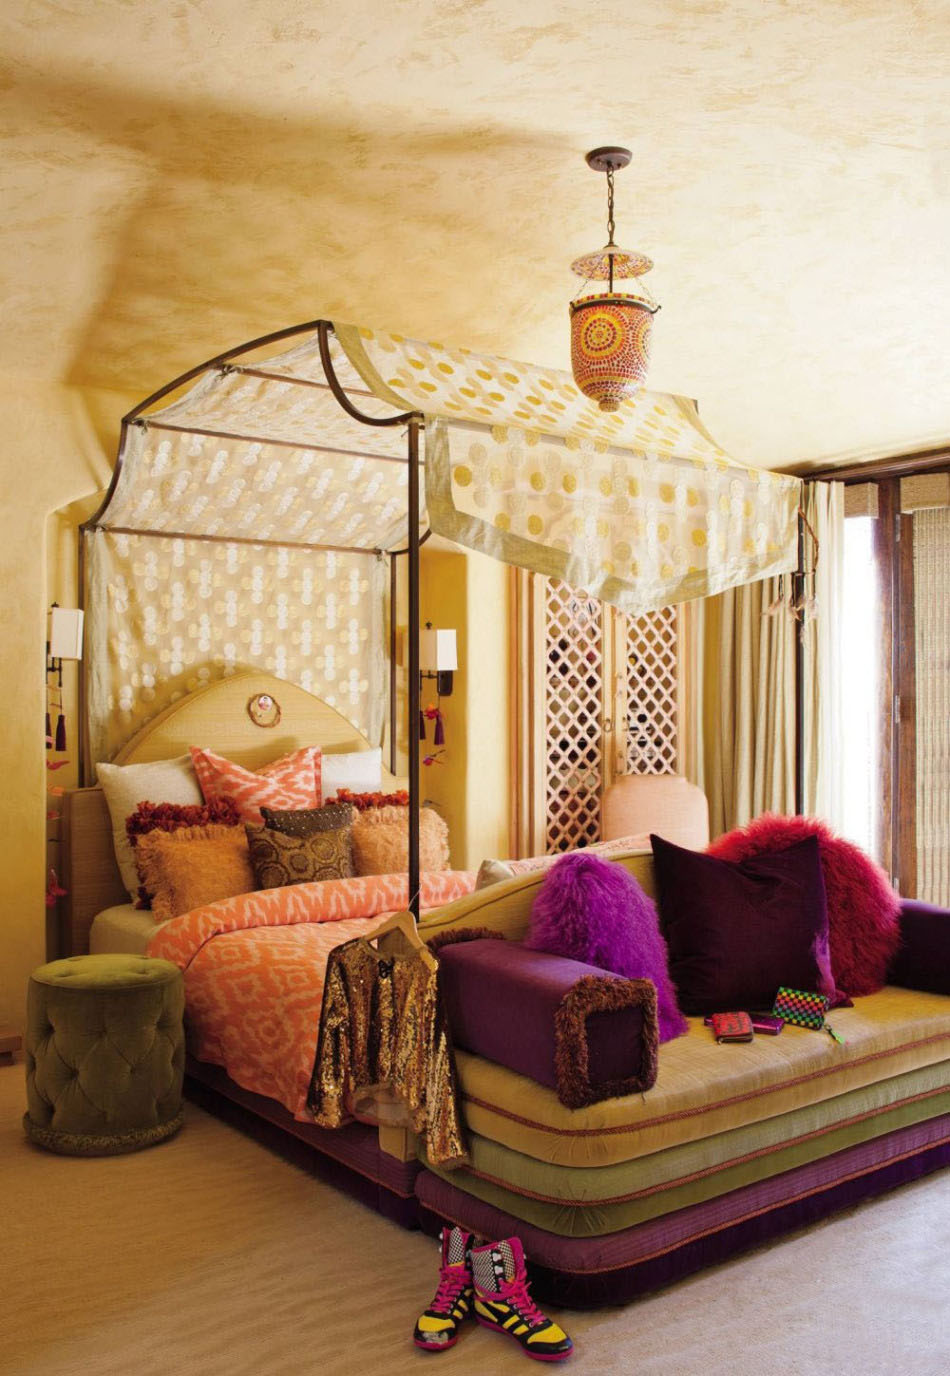 Latest Bohemian Bedroom Inspiration Four Poster Beds With Boho Chic Vibes  With Four Poster Bed Without Canopy.